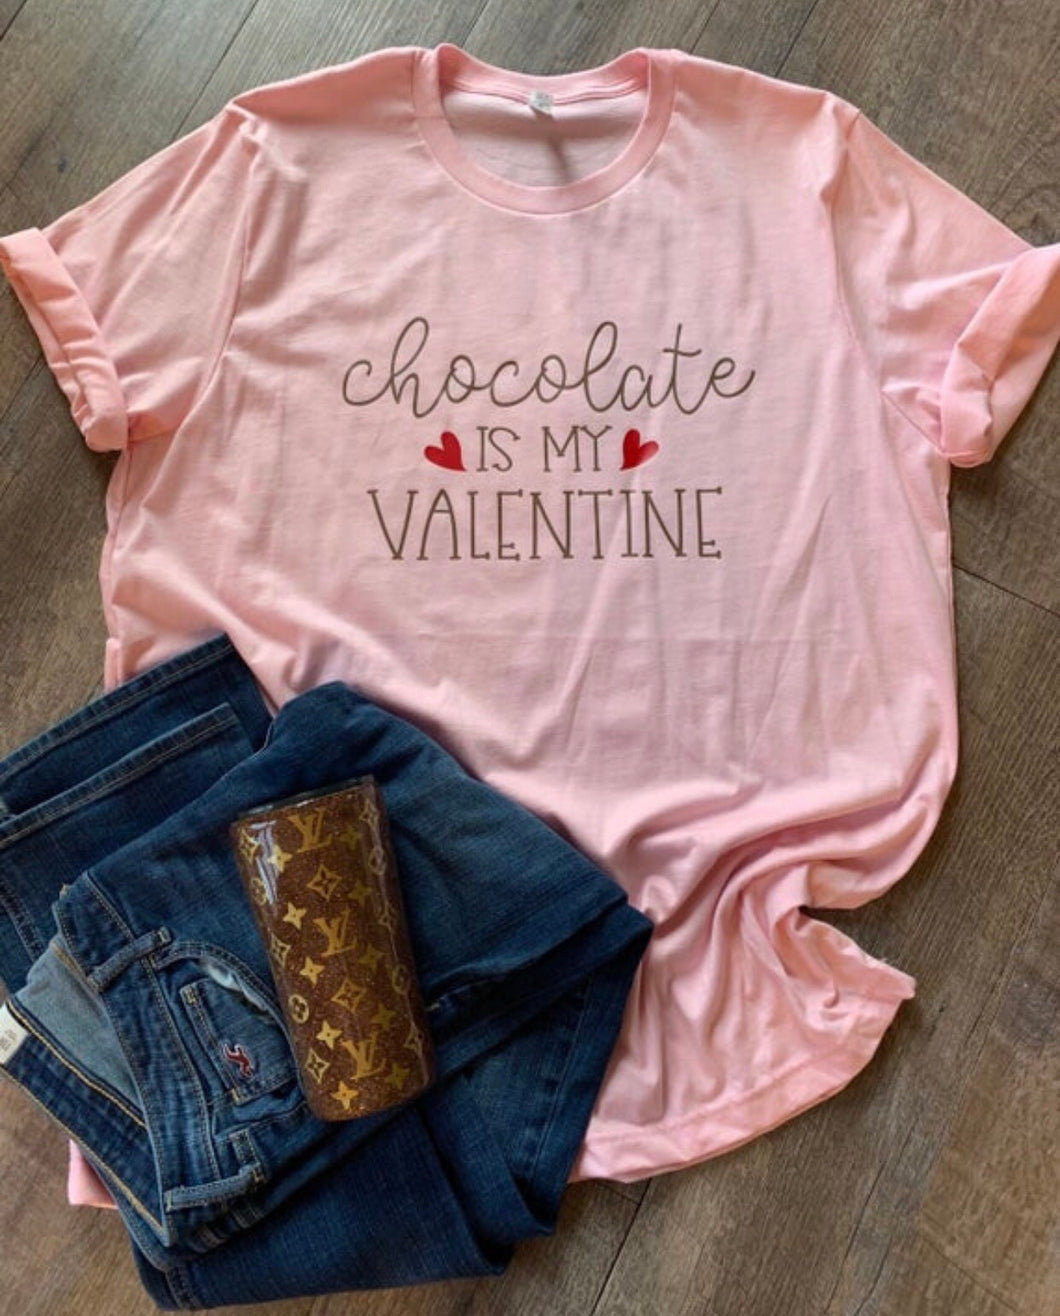 Chocolate is my Valentine funny pink and chocolate brown tee or hoodie. Sarcastic Valentine's Day. Single for vday. Funny shirt. womens gift - Mavictoria Designs Hot Press Express